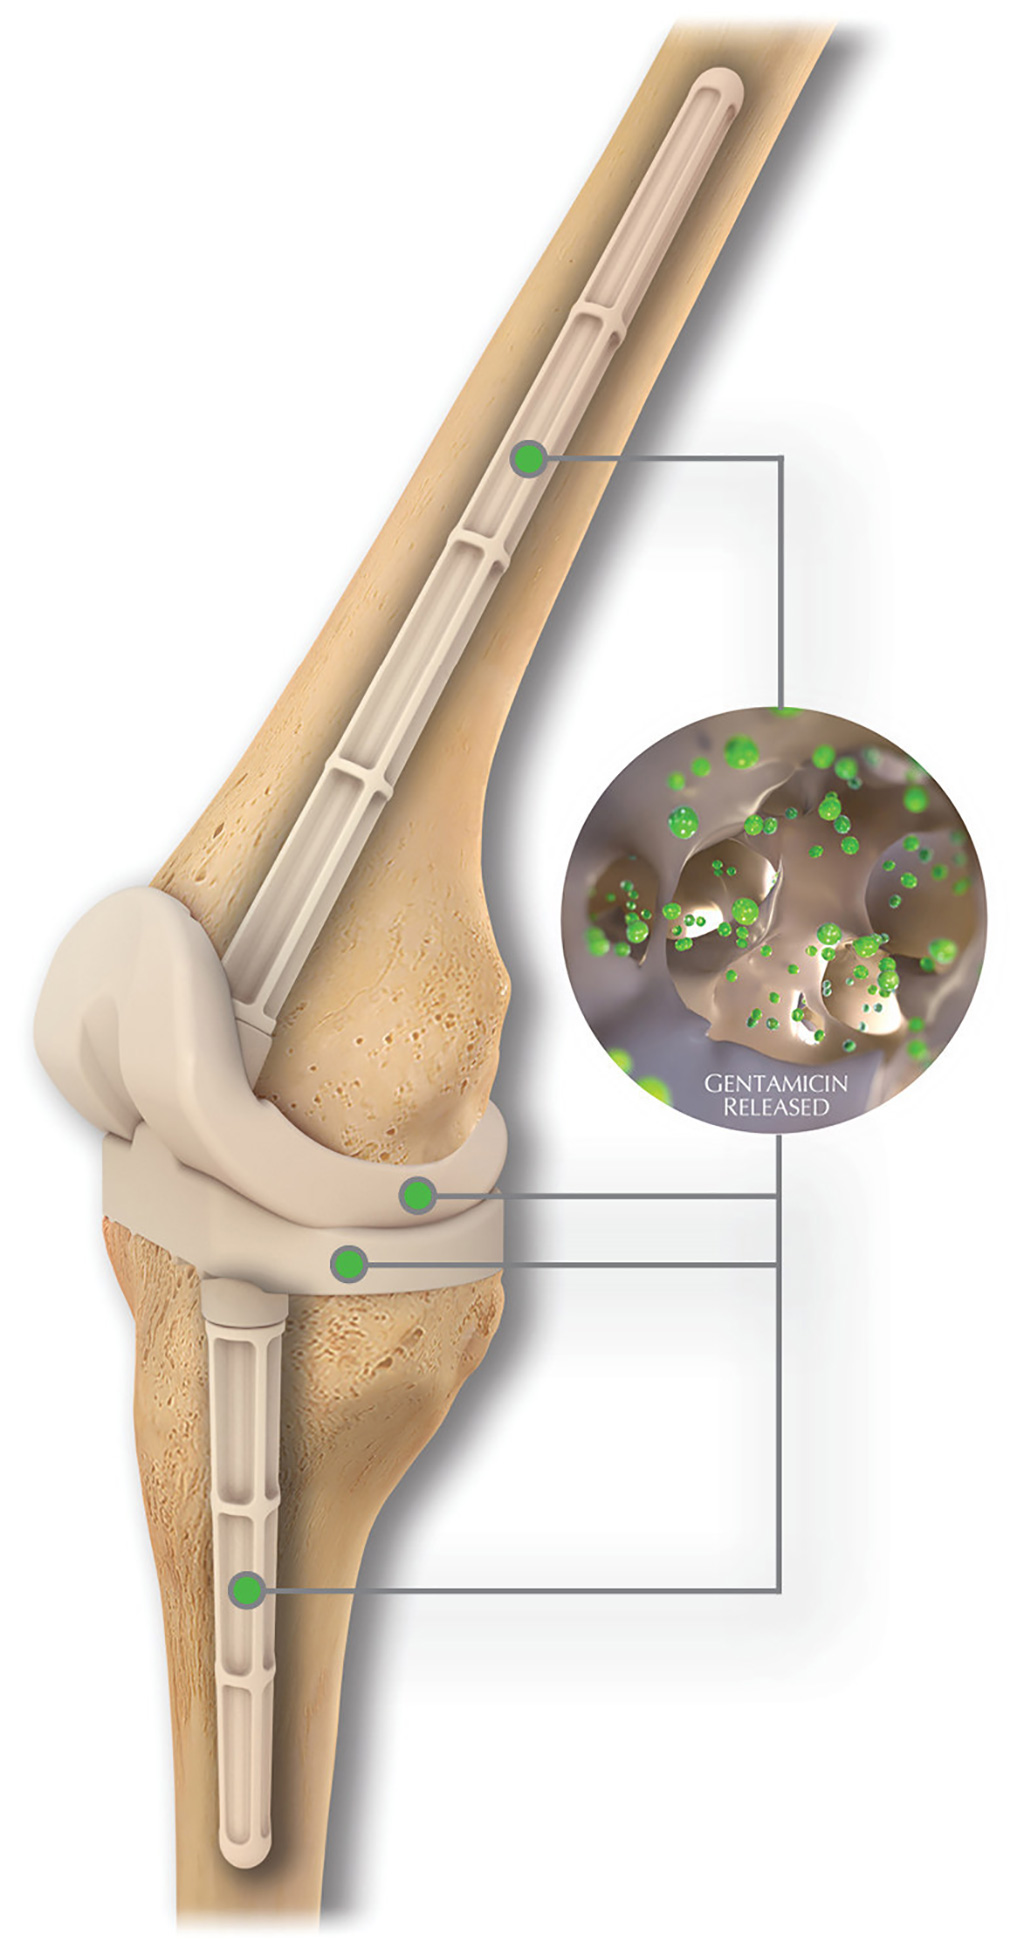 Image: The REMEDY Stemmed Knee Spacer (Photo courtesy of OsteoRemedies)